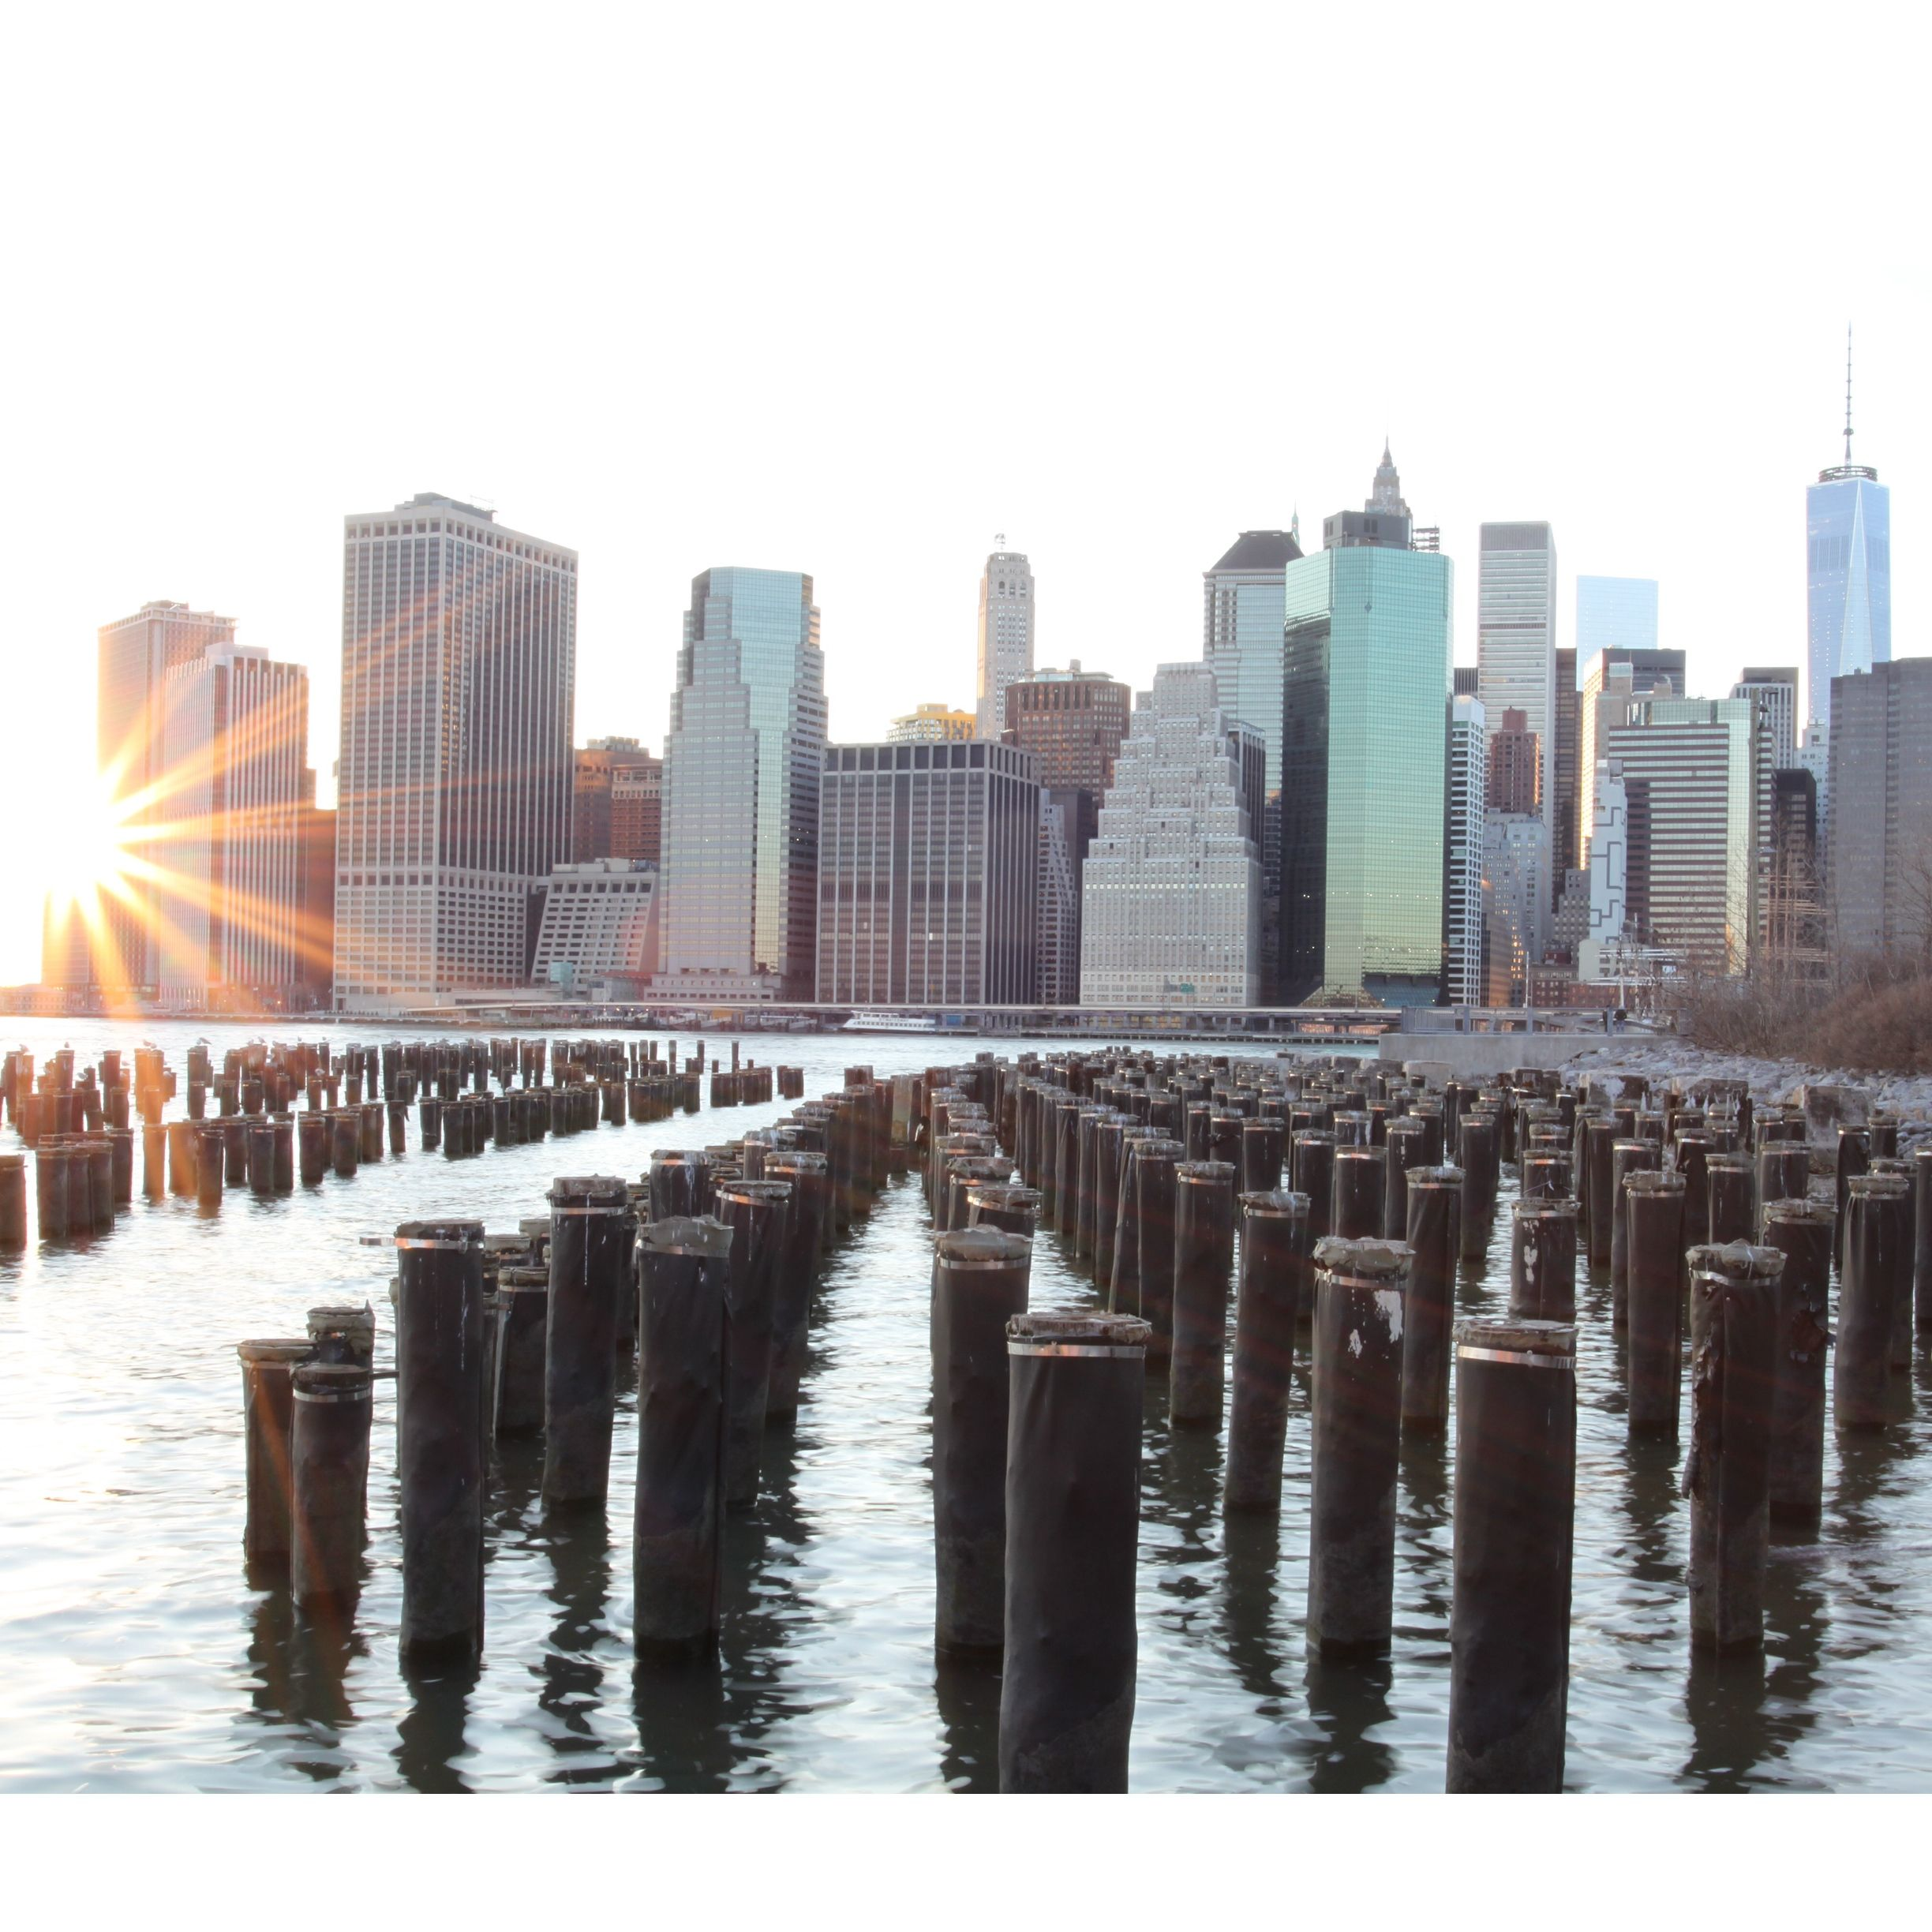 Nyc Photography Guide 7 Best Places To Photograph New York City And Sunset